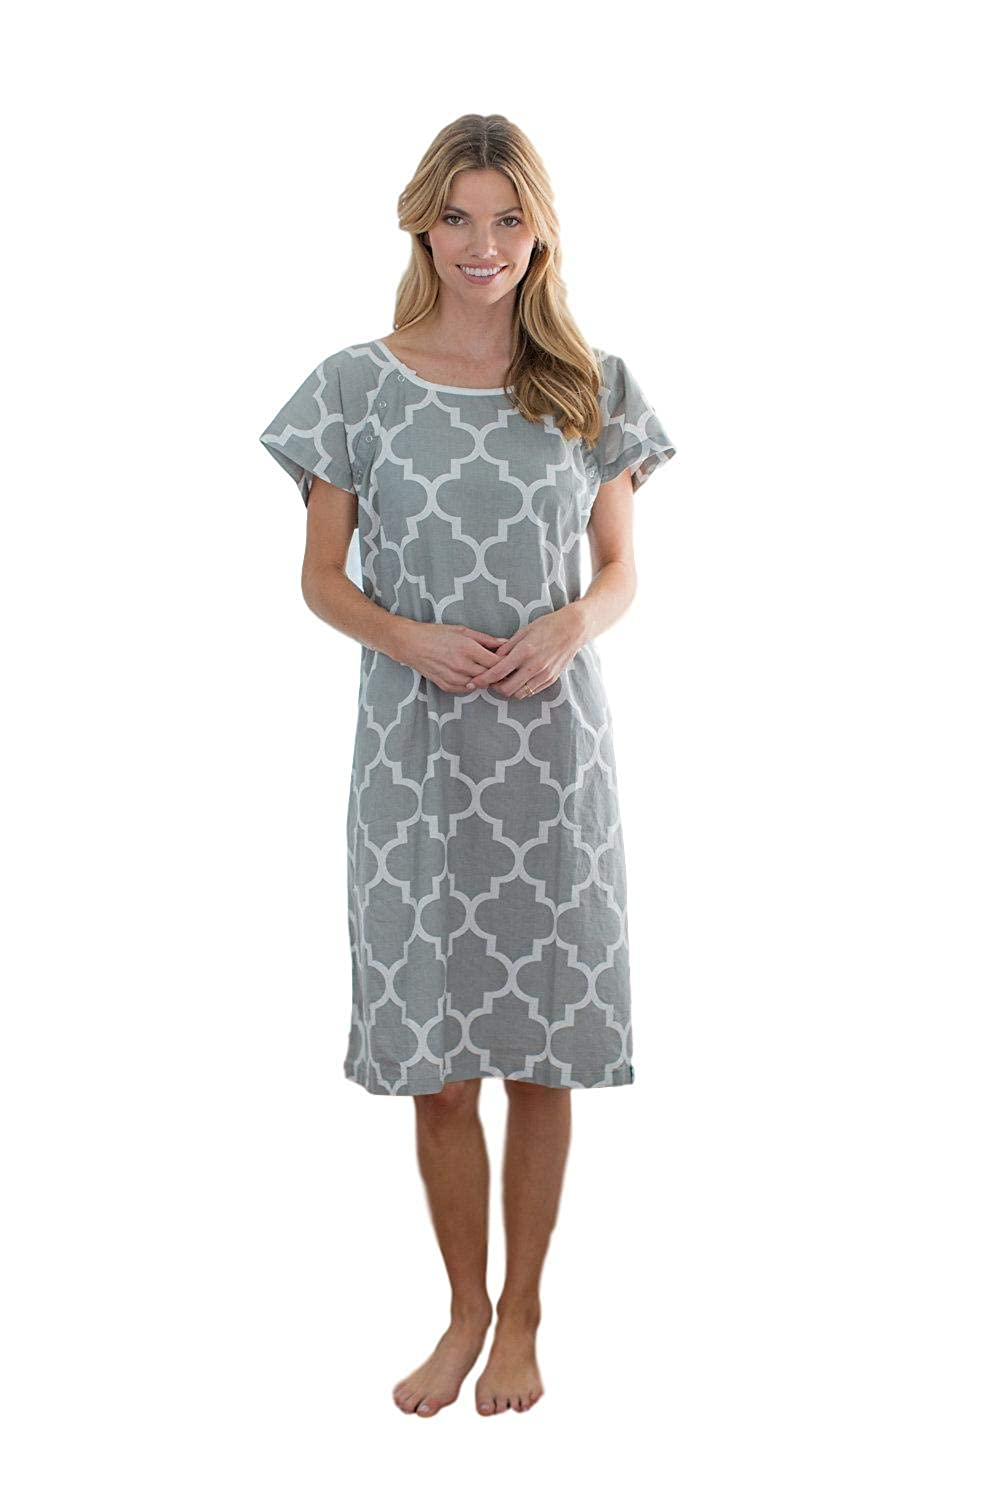 a33e920150a Amazon.com  Gownies - Designer Hospital Patient Gown